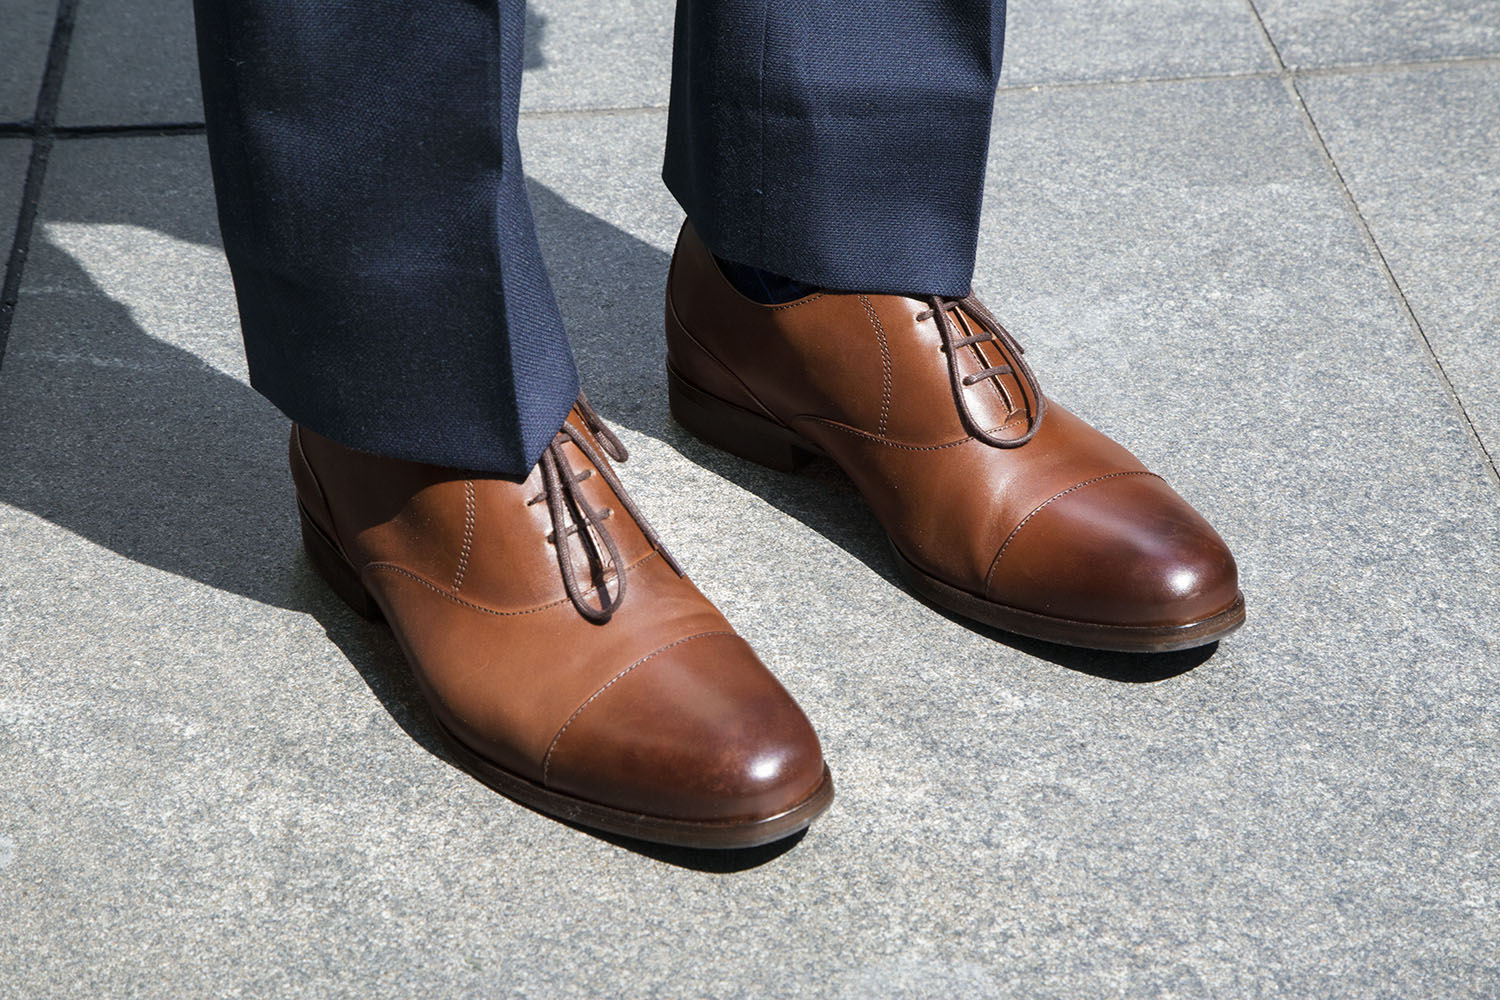 10 Tips to Keep Leather Shoes